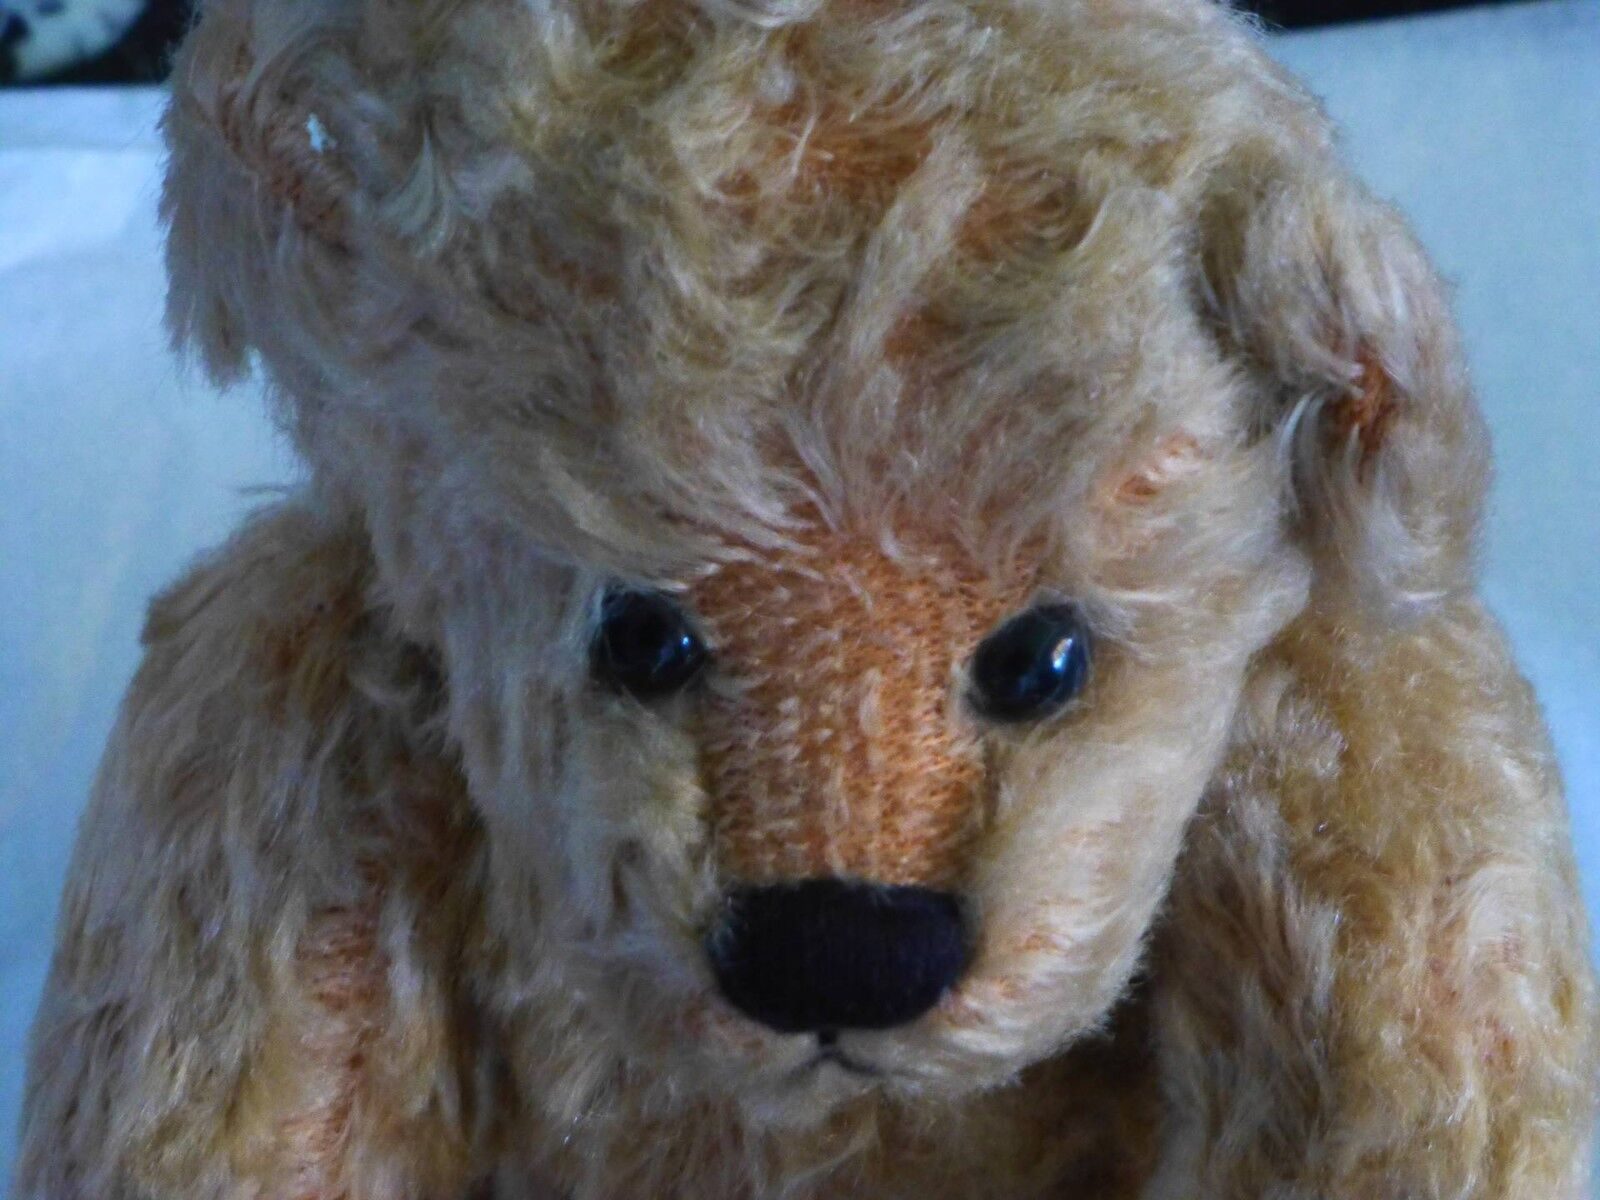 BEAUTIFUL  BEAR  OLD WORN BUT BEAUTIFUL -LOVELY -LOVELY -LOVELY EXPRESSION ON HIS FACE b9c855